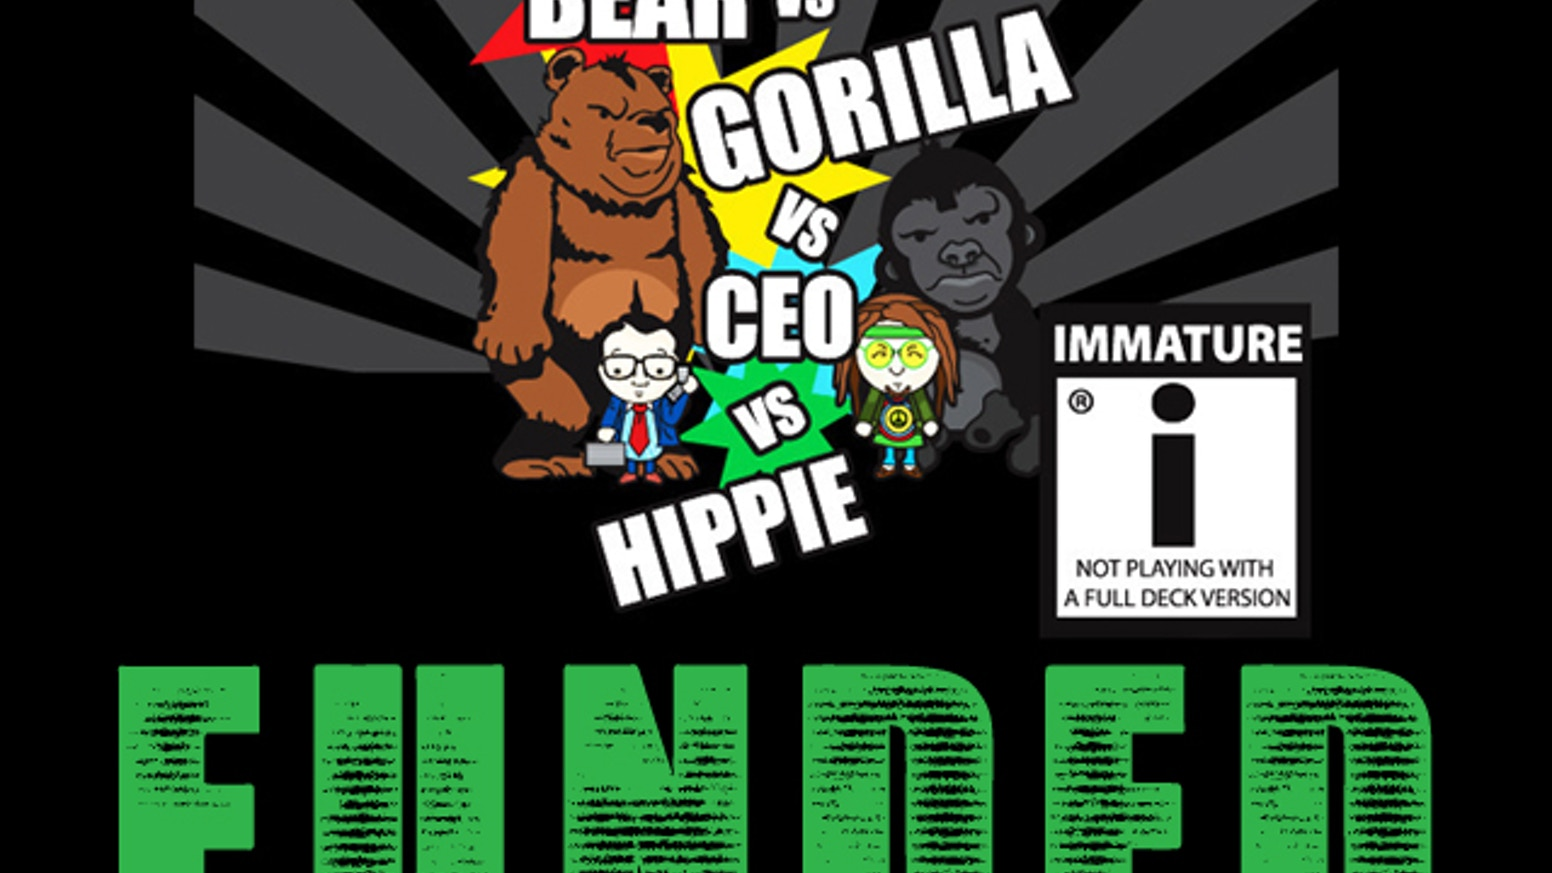 Bear Vs Gorilla Ceo Hippie New Half Deck